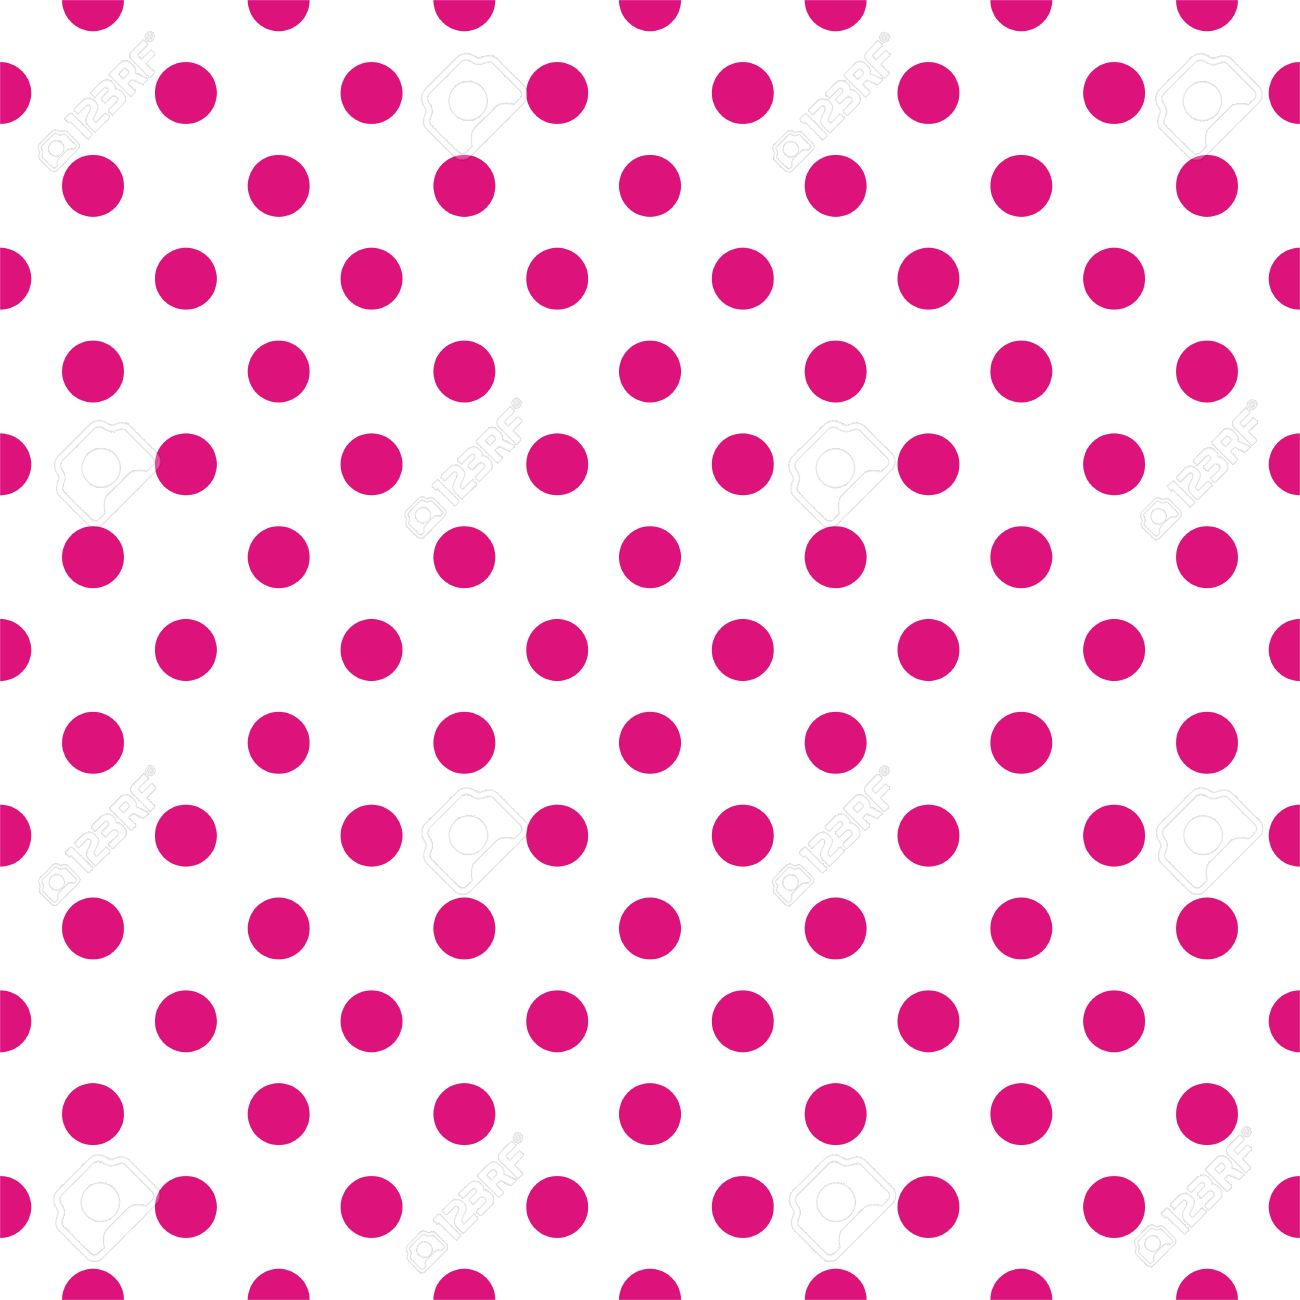 Pics photos pink polka dot s wallpaper - Seamless Vector Pattern With Dark Pink Polka Dots On A White For Web Design Desktop